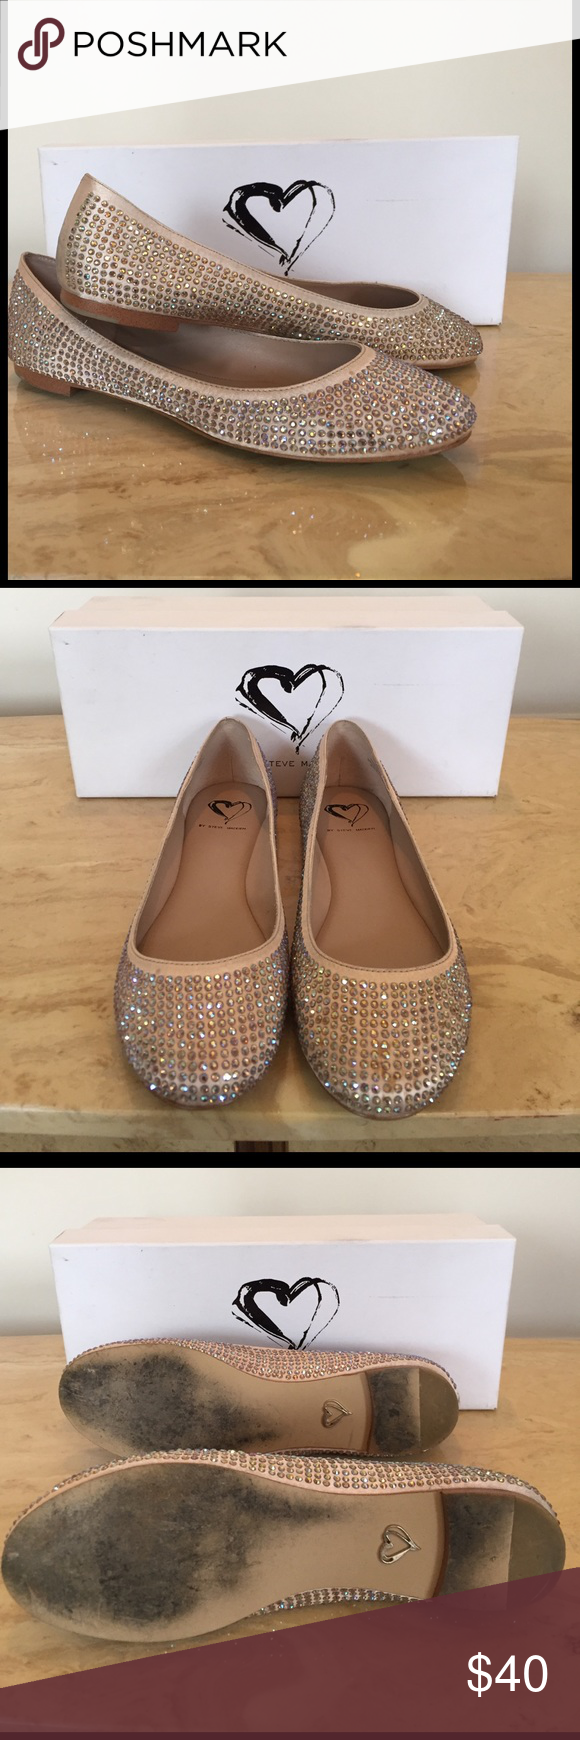 Steve Madden I-Dreemy Blush Bedazzled Flat Nude bedazzled flat by Steve Madden. All merchandise sold as-is. Steve Madden Shoes Flats & Loafers